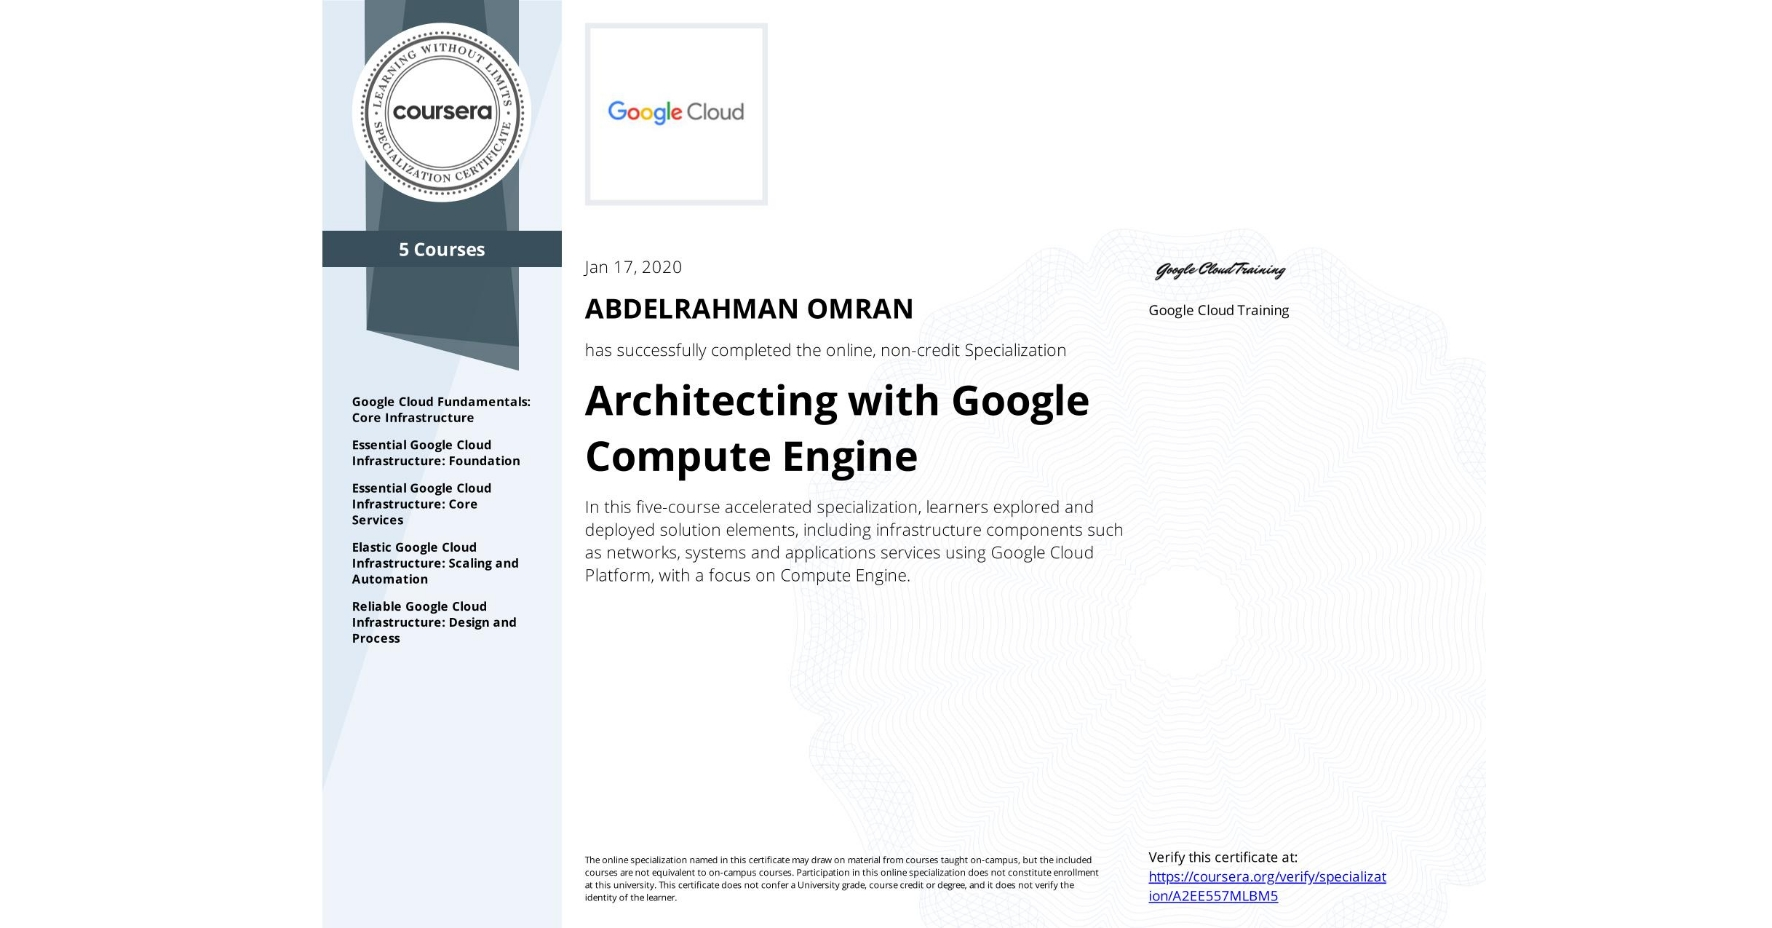 View certificate for ABDELRAHMAN OMRAN, Architecting with Google Compute Engine, offered through Coursera. In this six-course accelerated specialization, learners explored and deployed solution elements, including infrastructure components such as networks, systems and applications services using Google Cloud Platform.